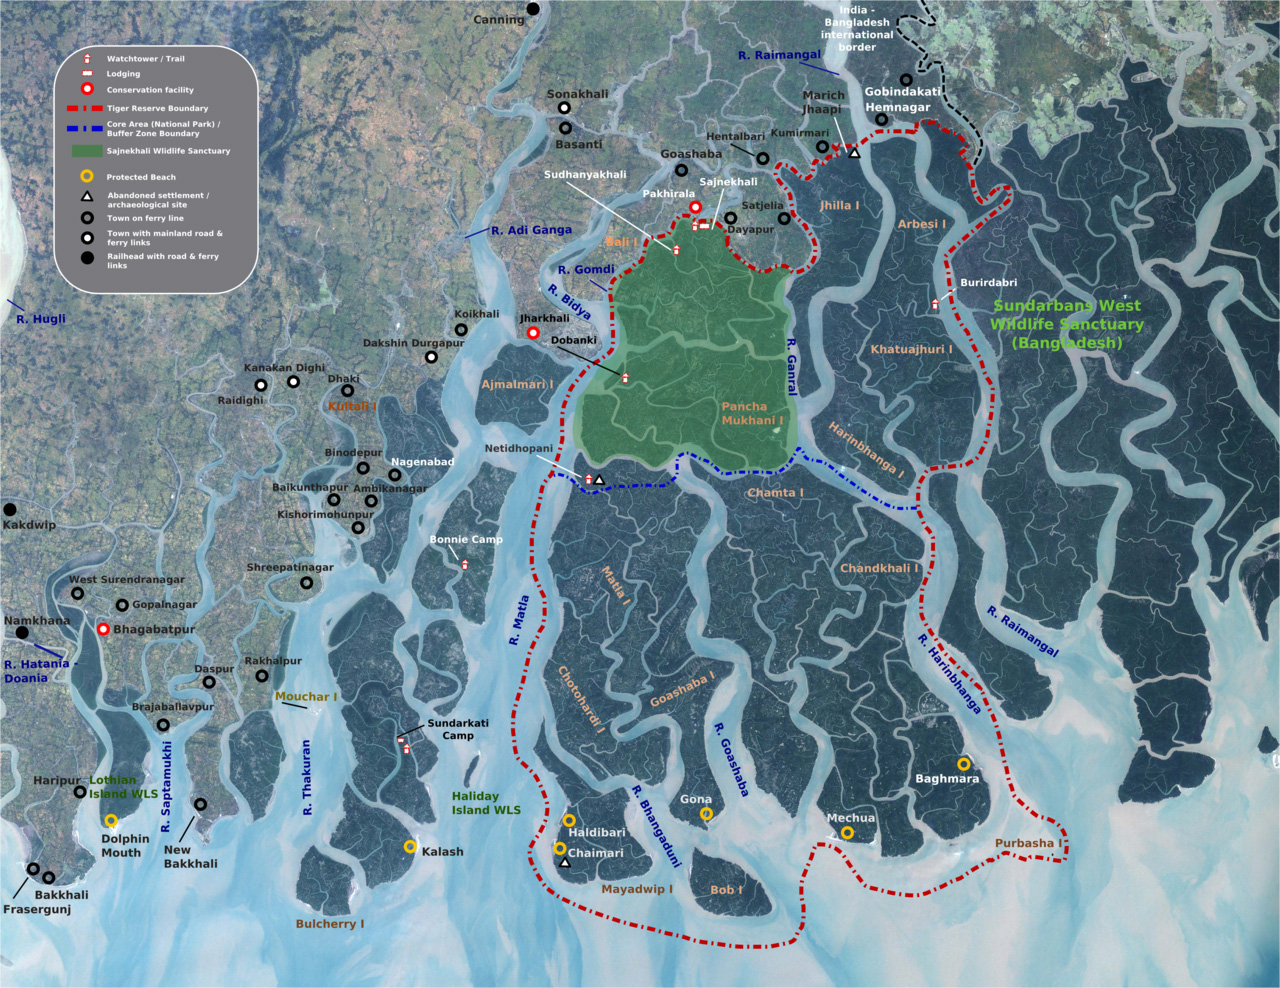 Map of the protected areas of the Indian Sundarban